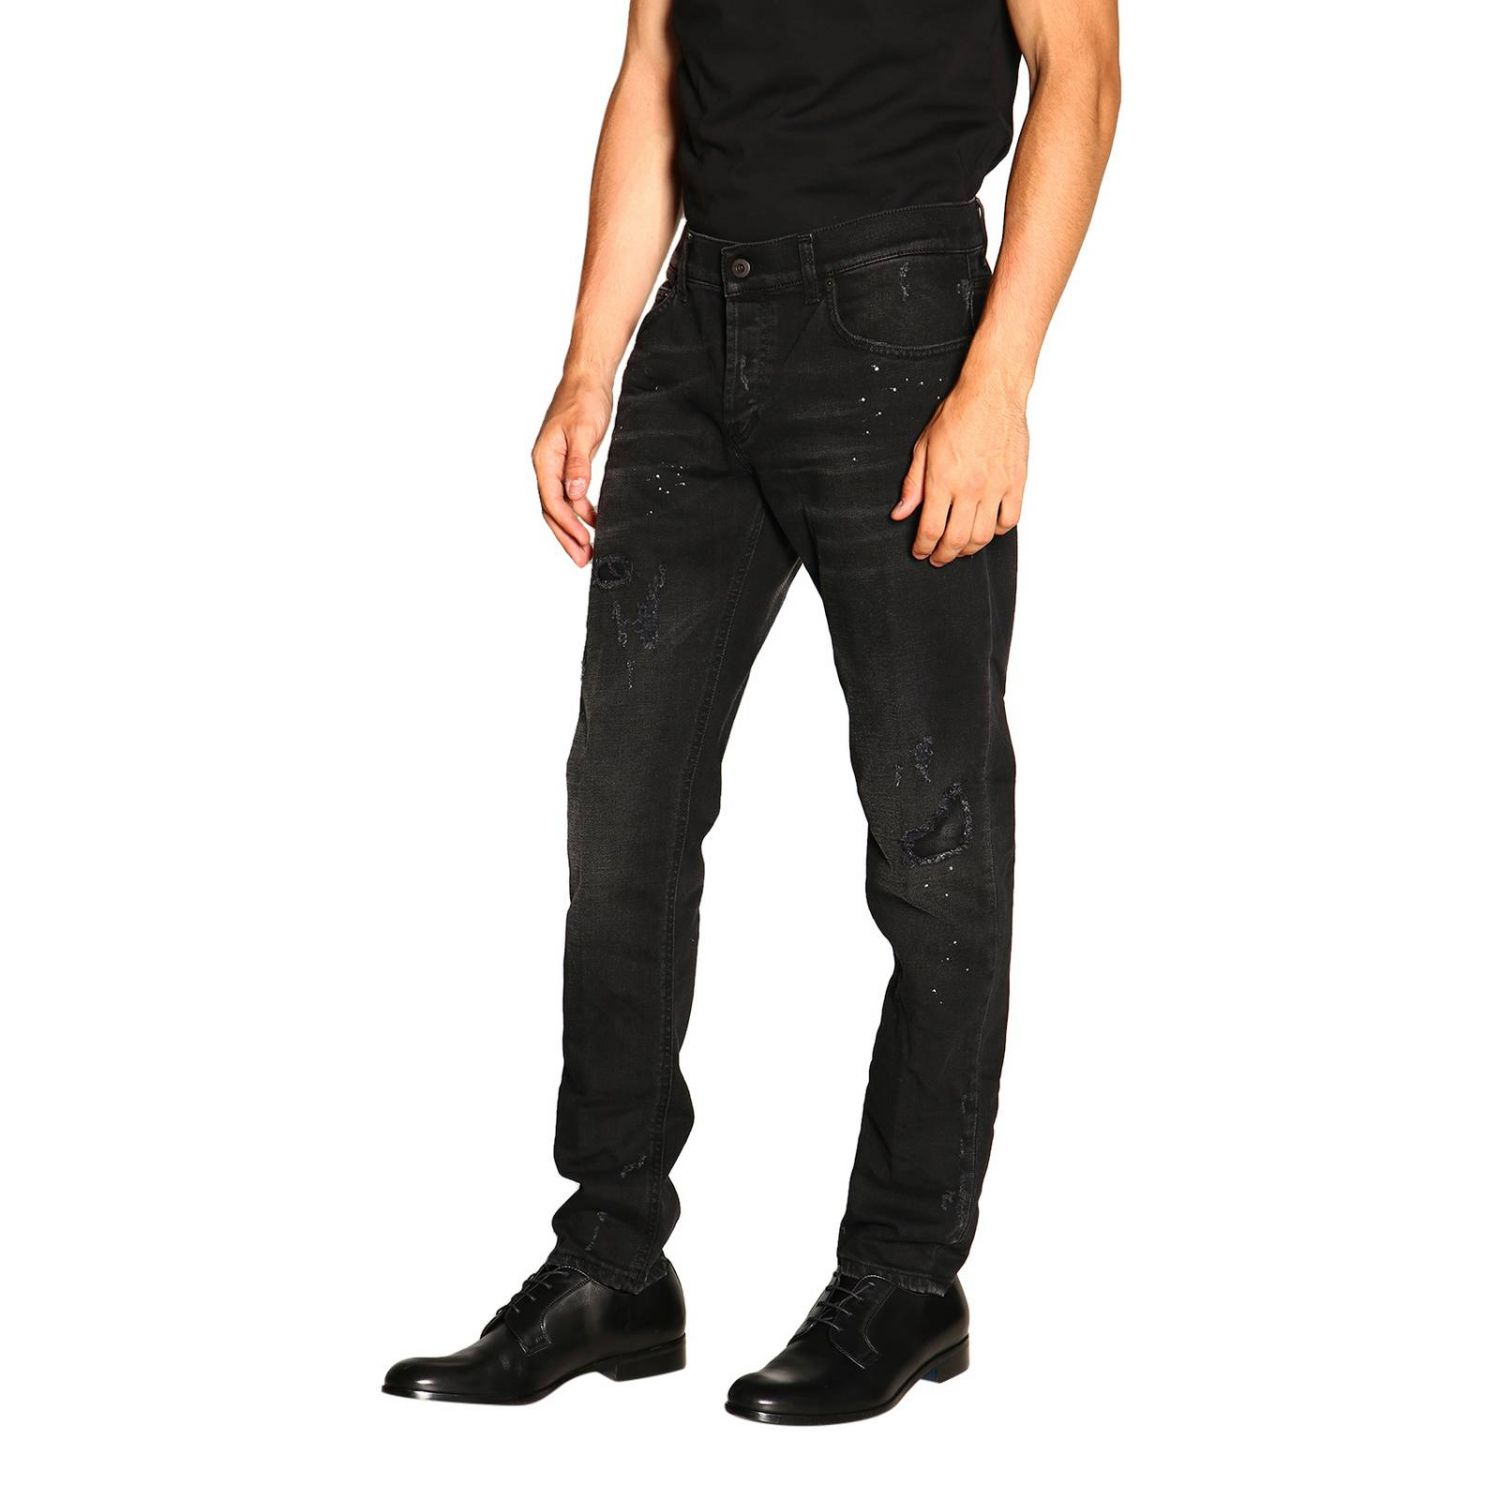 Jeans men Dondup black 4